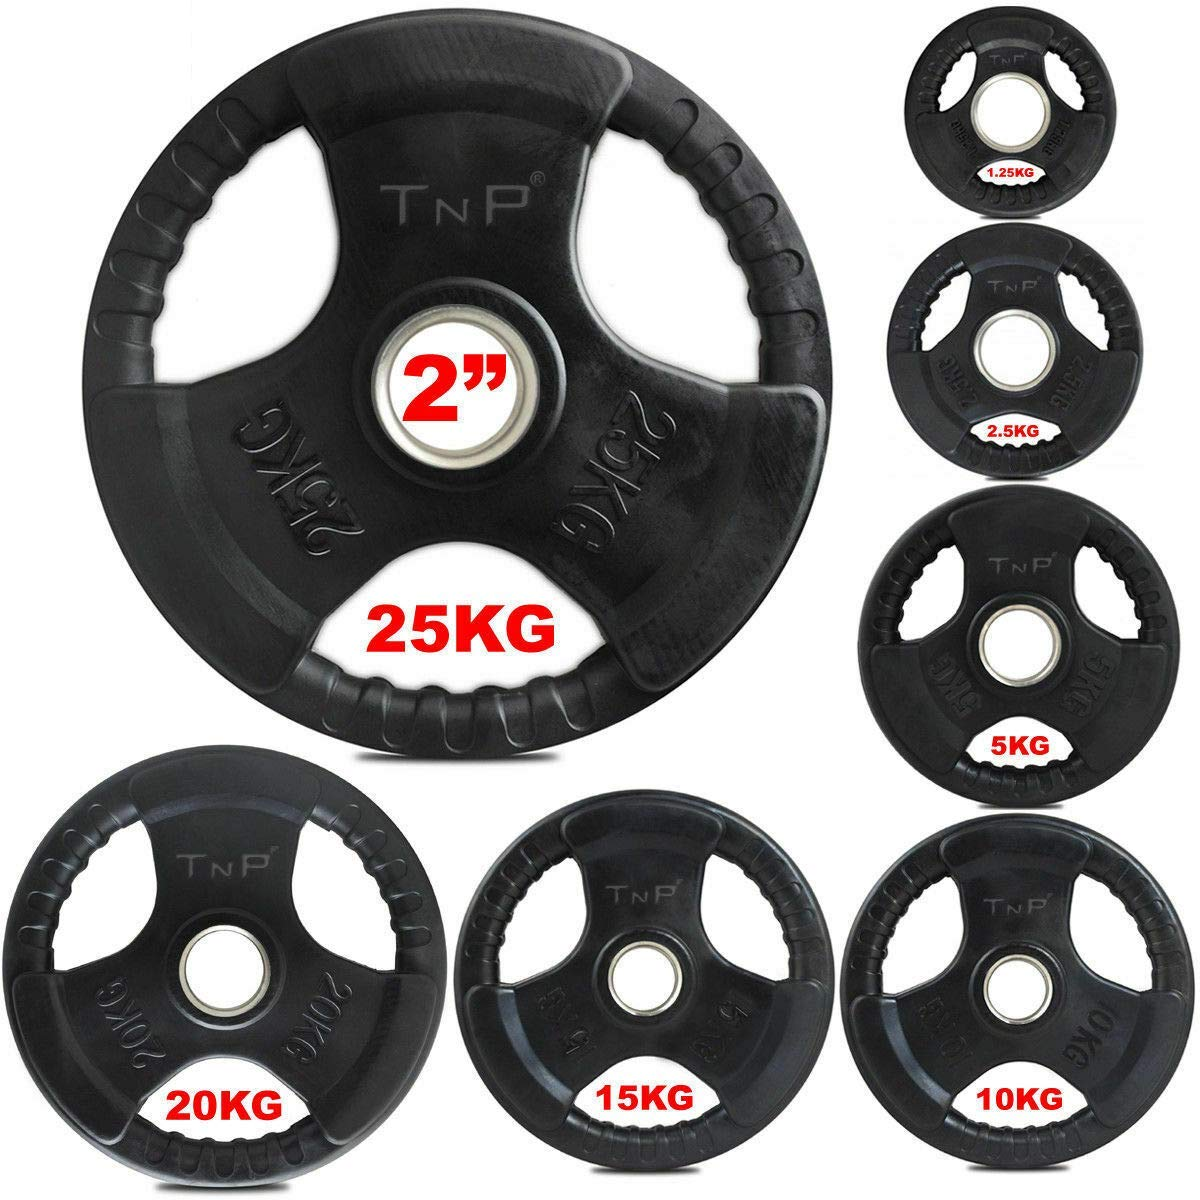 TnP Distribution Solid Steel 2 Olympic Weight Plates Disc 2.5KG Pair Hammertone for Dumbbell Barbell Bar Weights Set